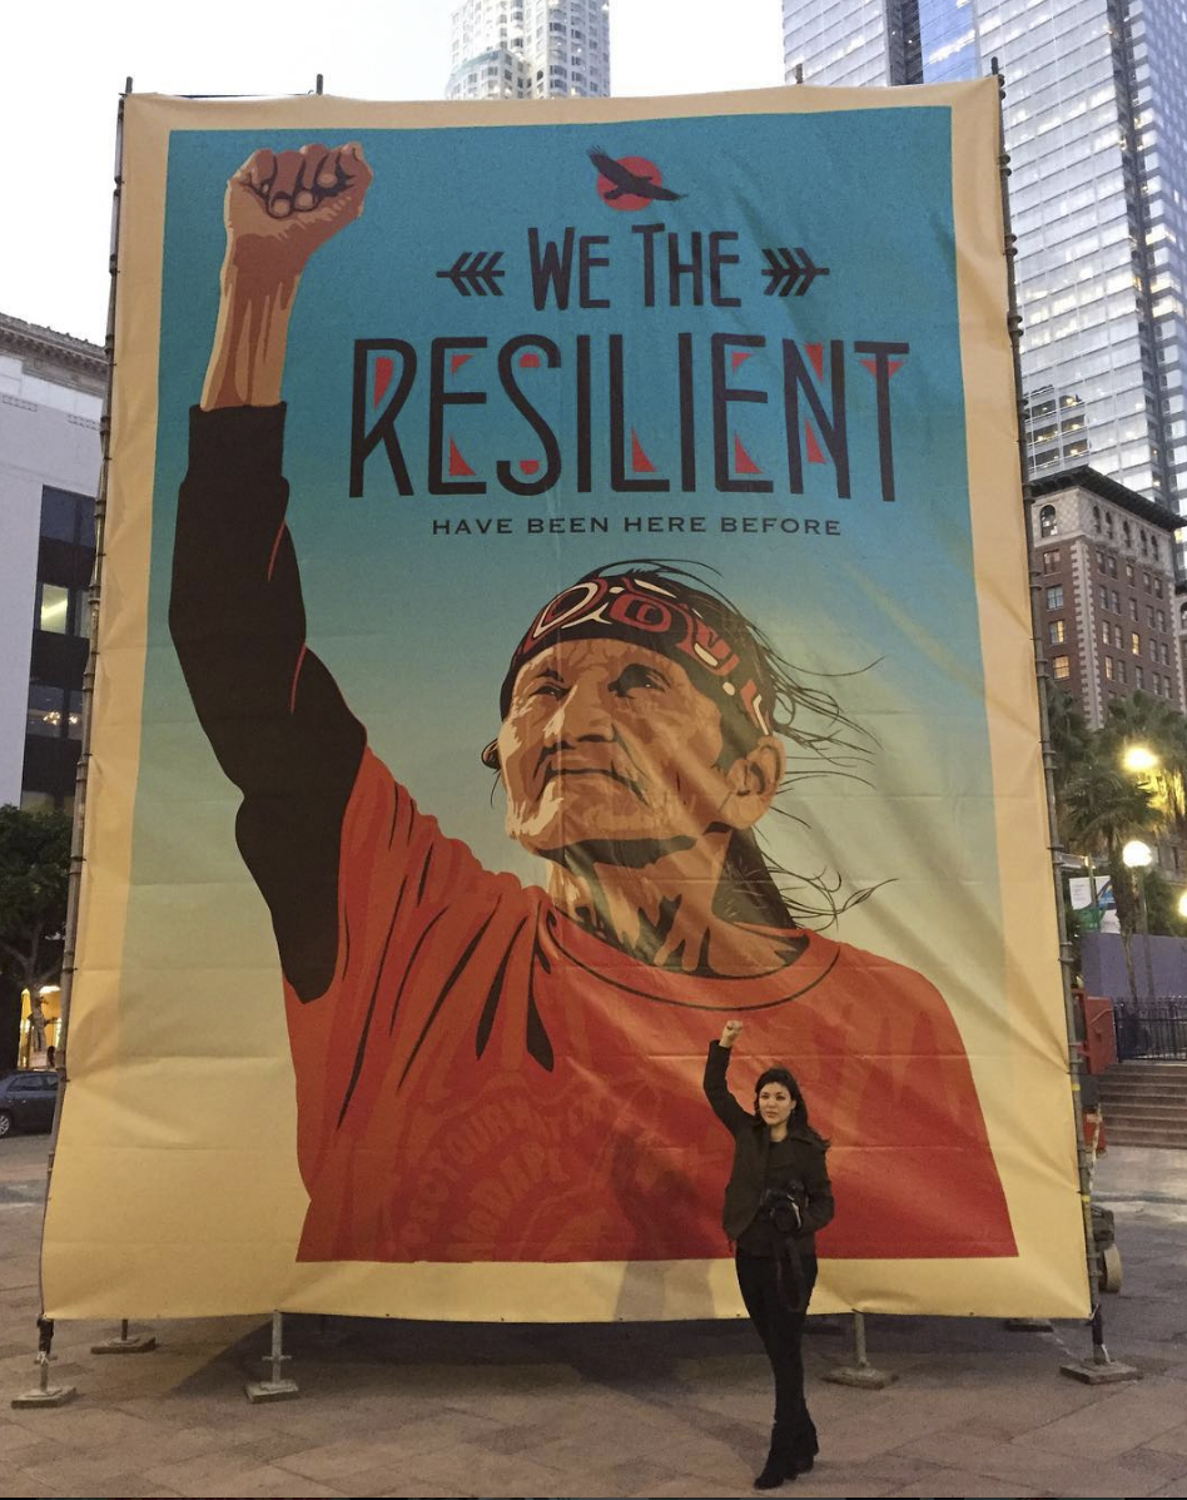 Ernesto_We The Resilient-8.jpg